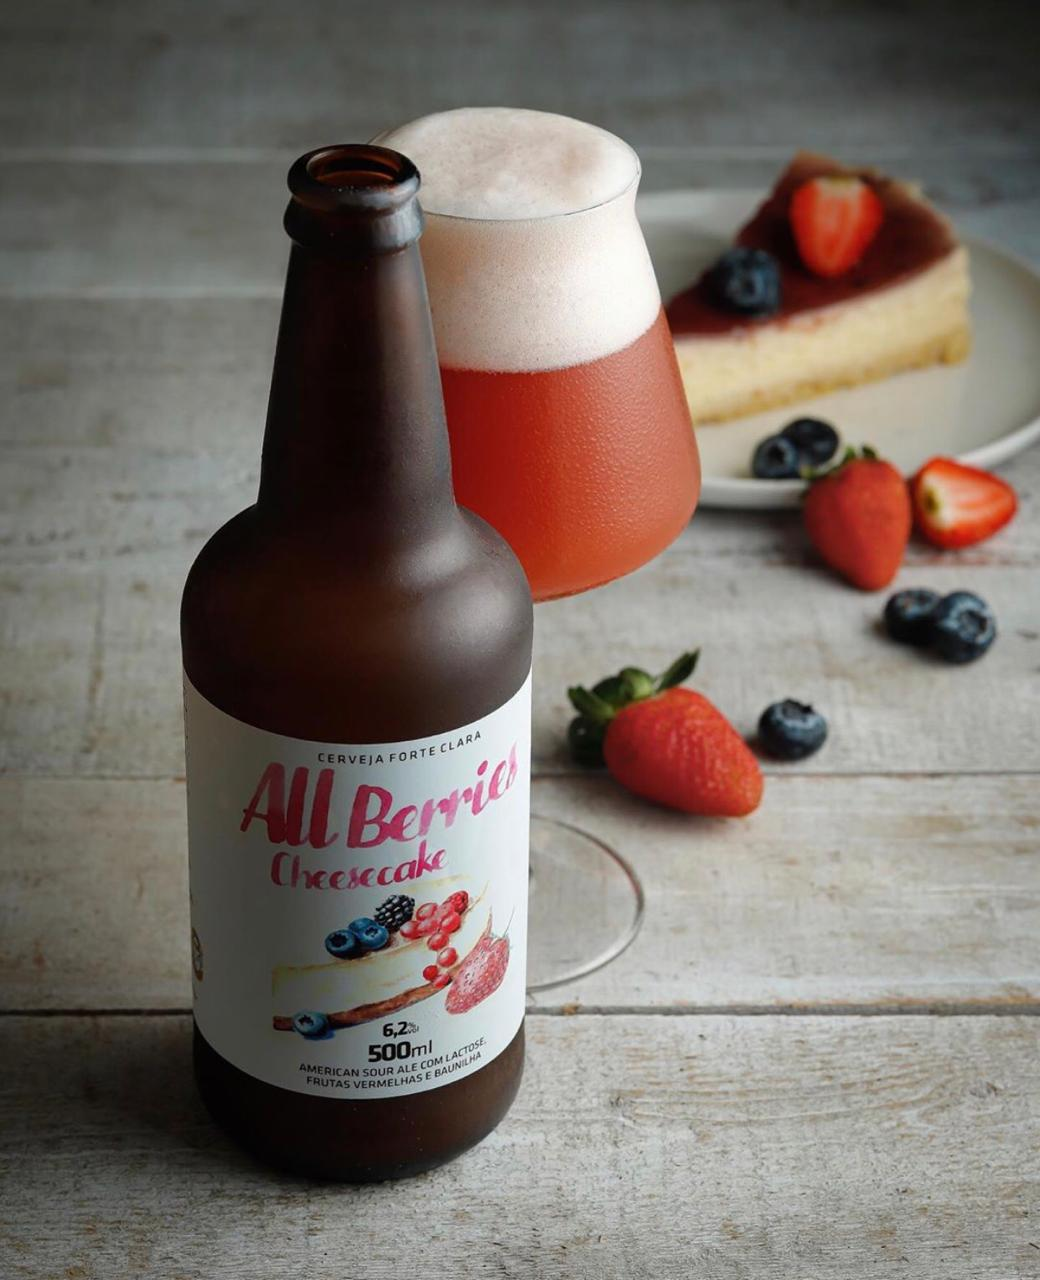 5 Elementos All Berries Cheesecake 500ml American Sour